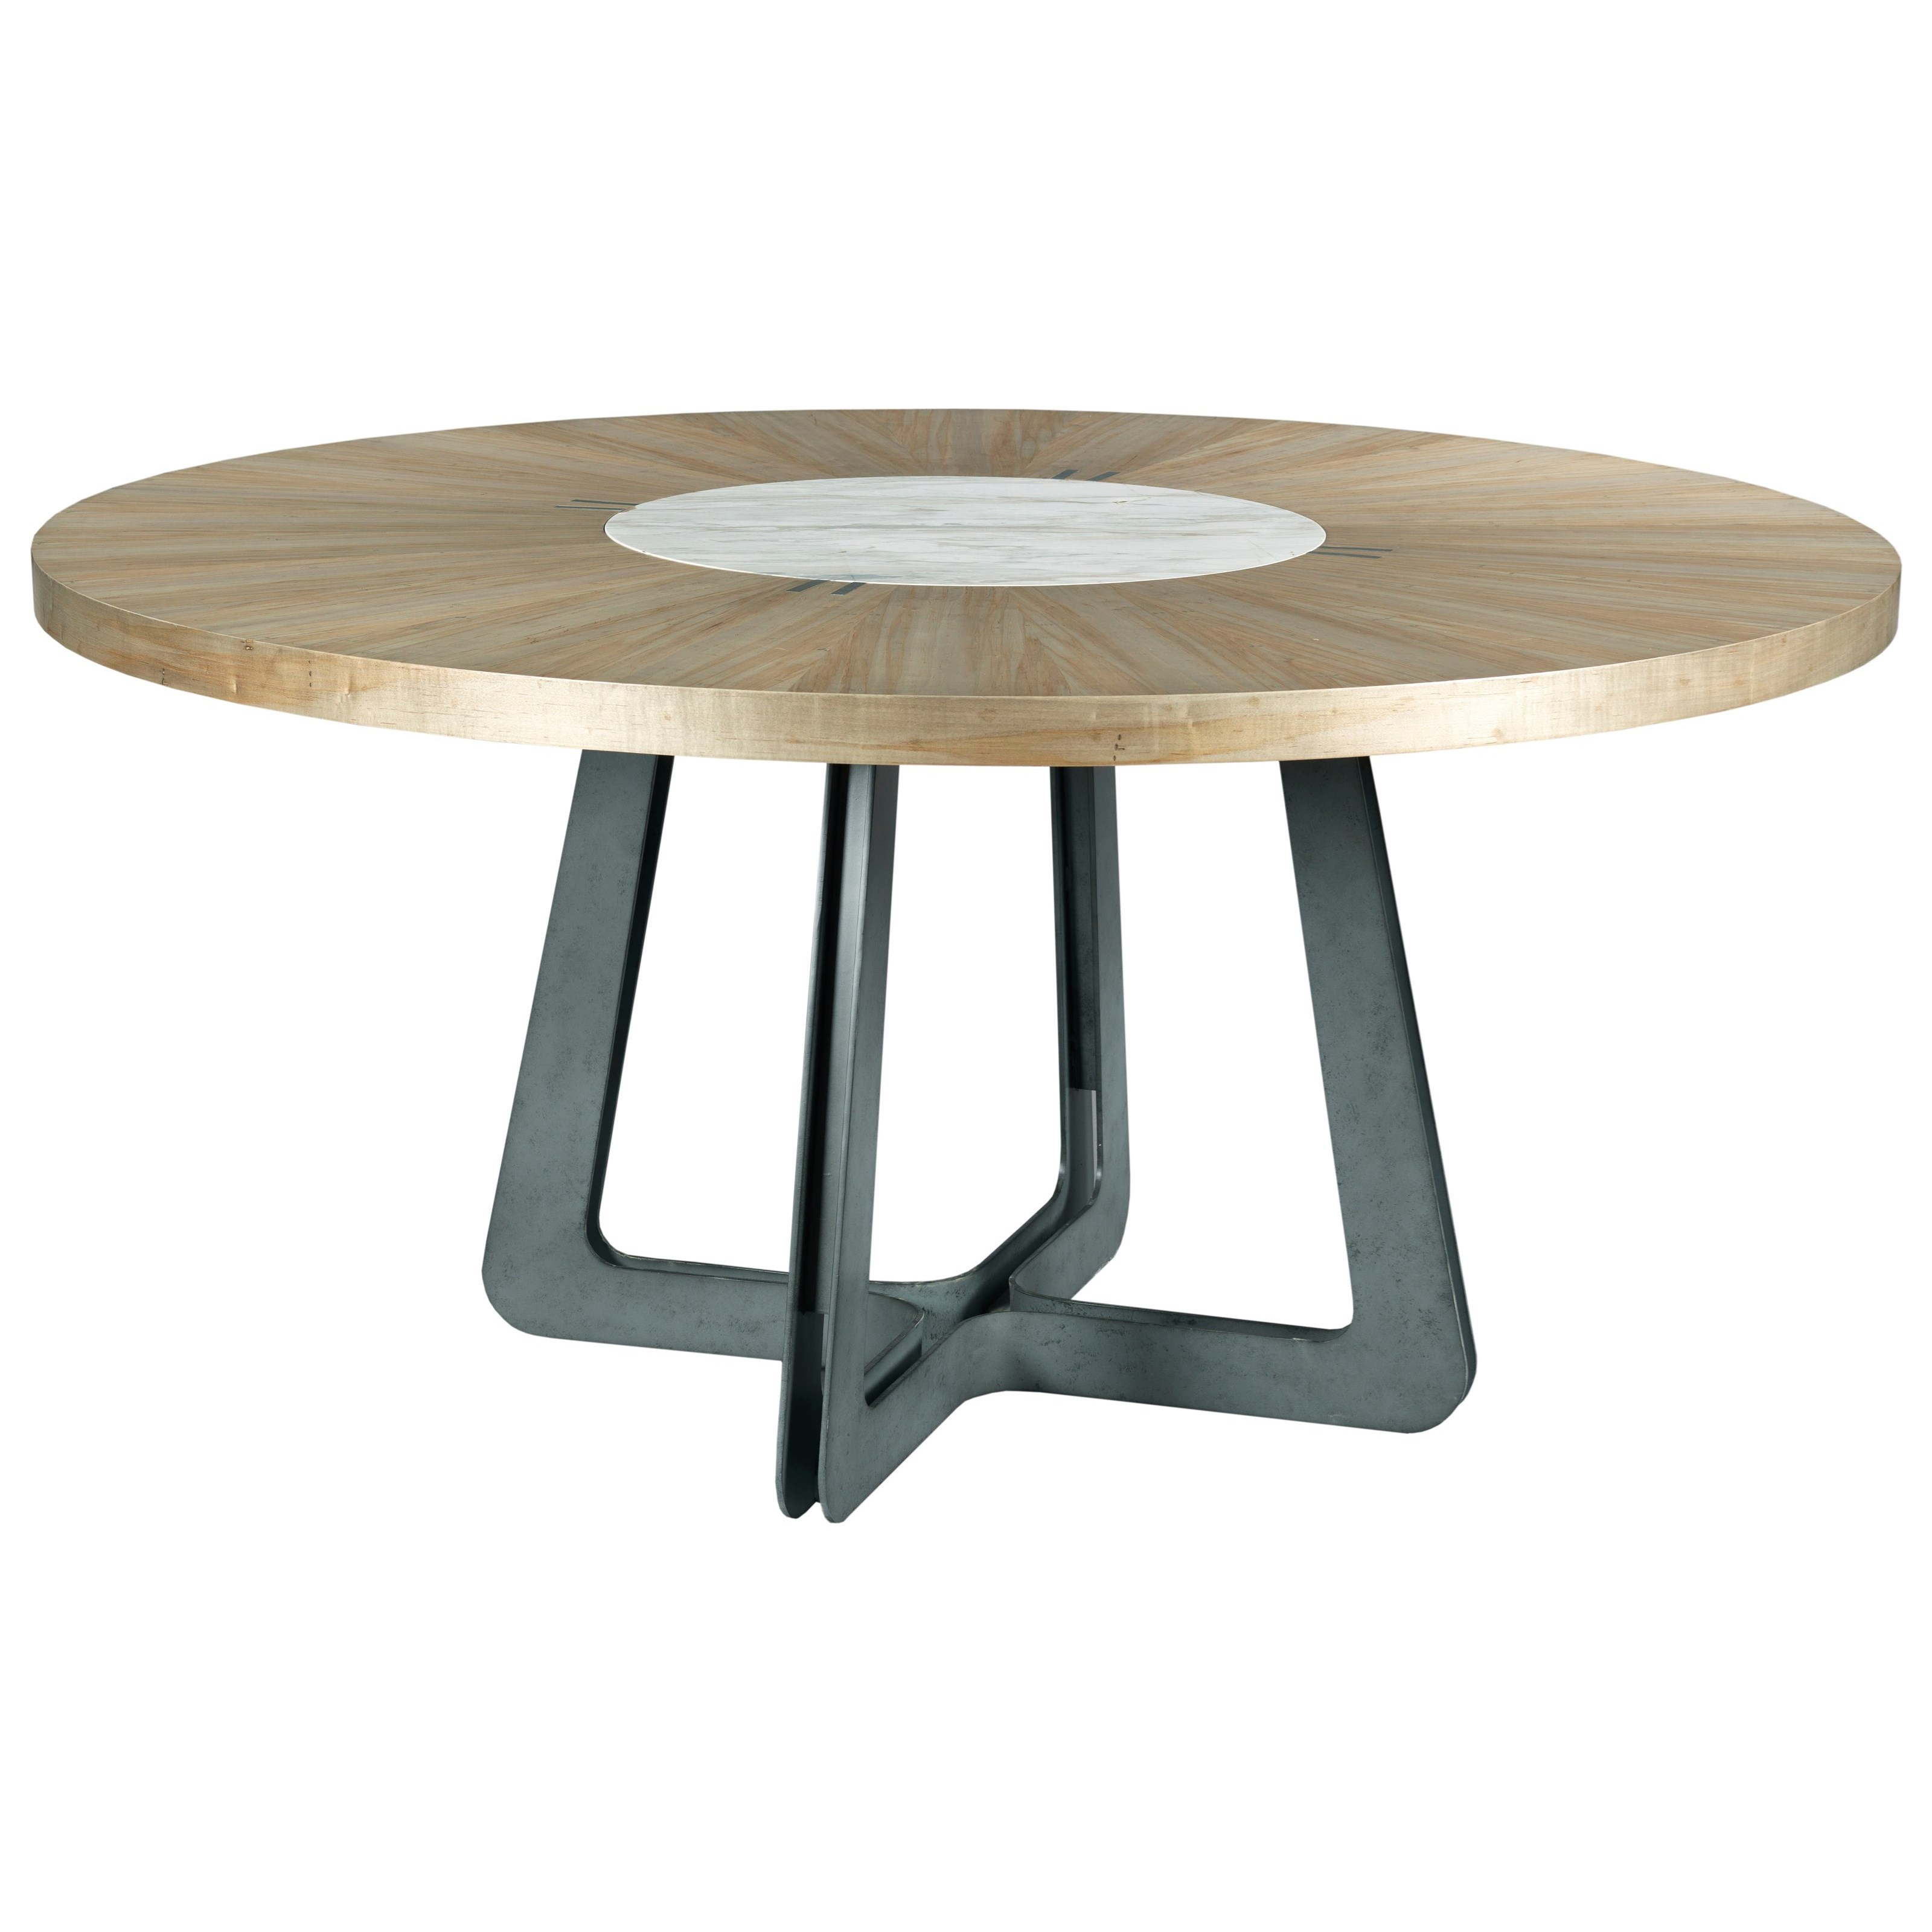 Concentric Round Table